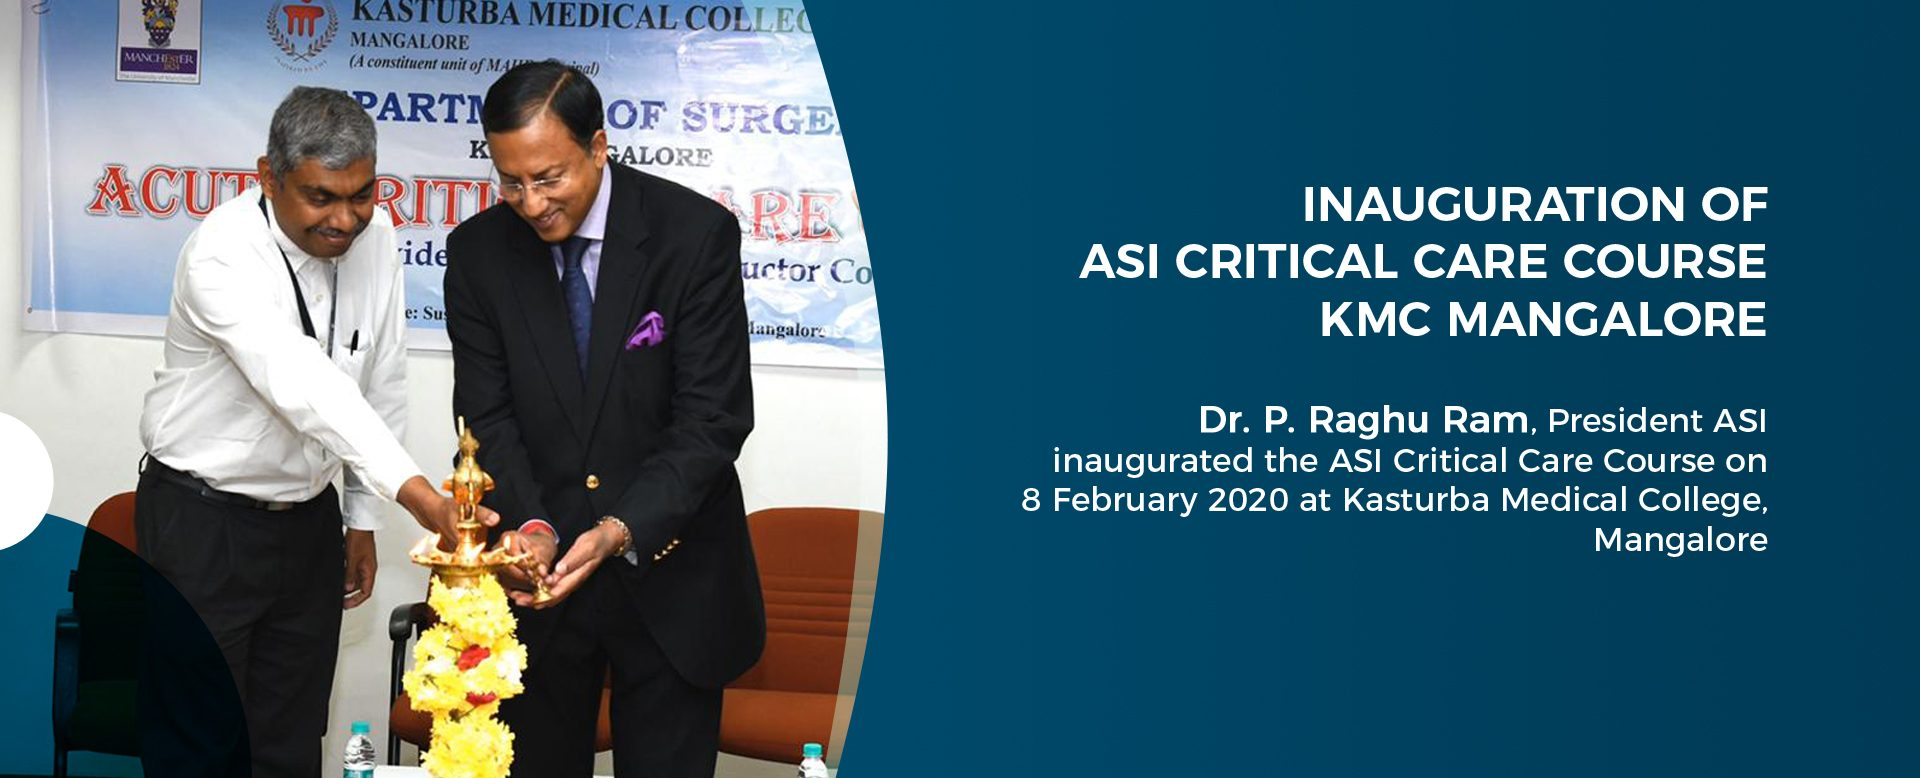 """<span style=""""color: #F004868;""""><a href=""""http://asiindia.org/2020/02/12/inauguration-of-asi-critical-care-course-kmc-mangalore"""" style=""""text-decoration:none; color: #F004868;"""">View More</a></span>"""